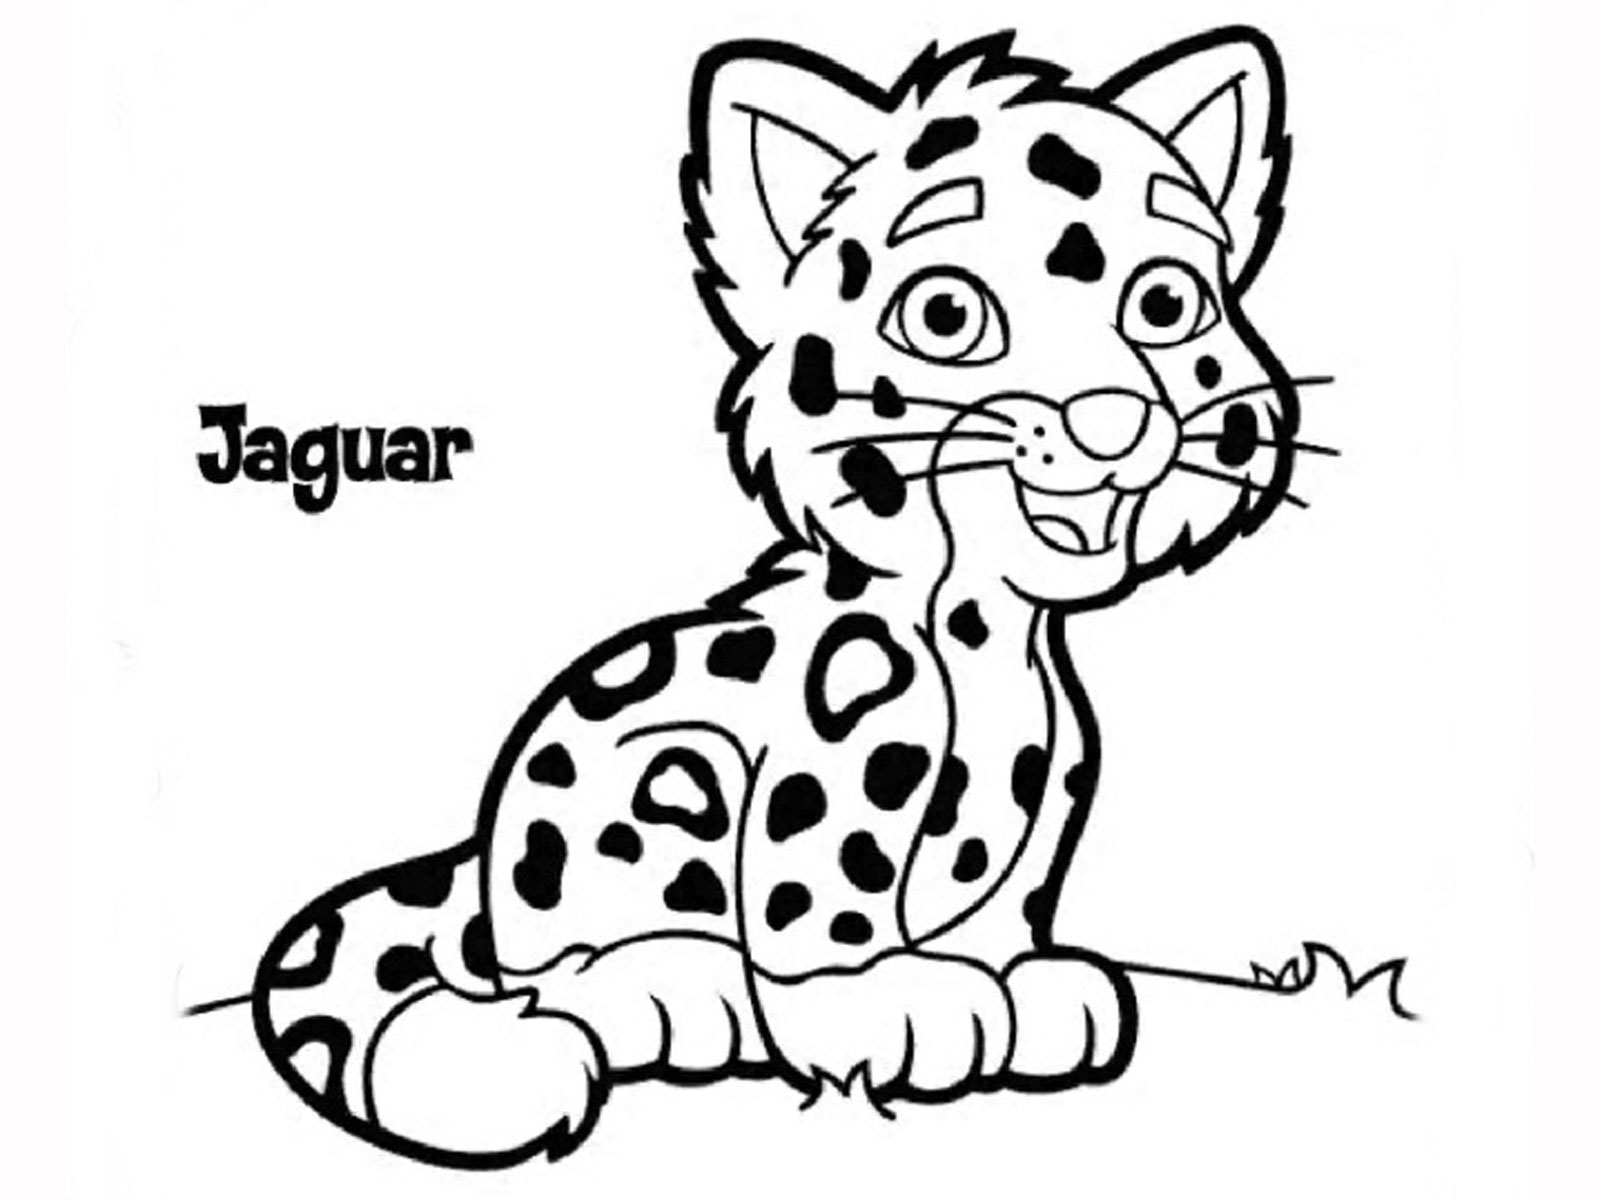 animal grayscale coloring pages jaguar animal facts pages animal grayscale coloring